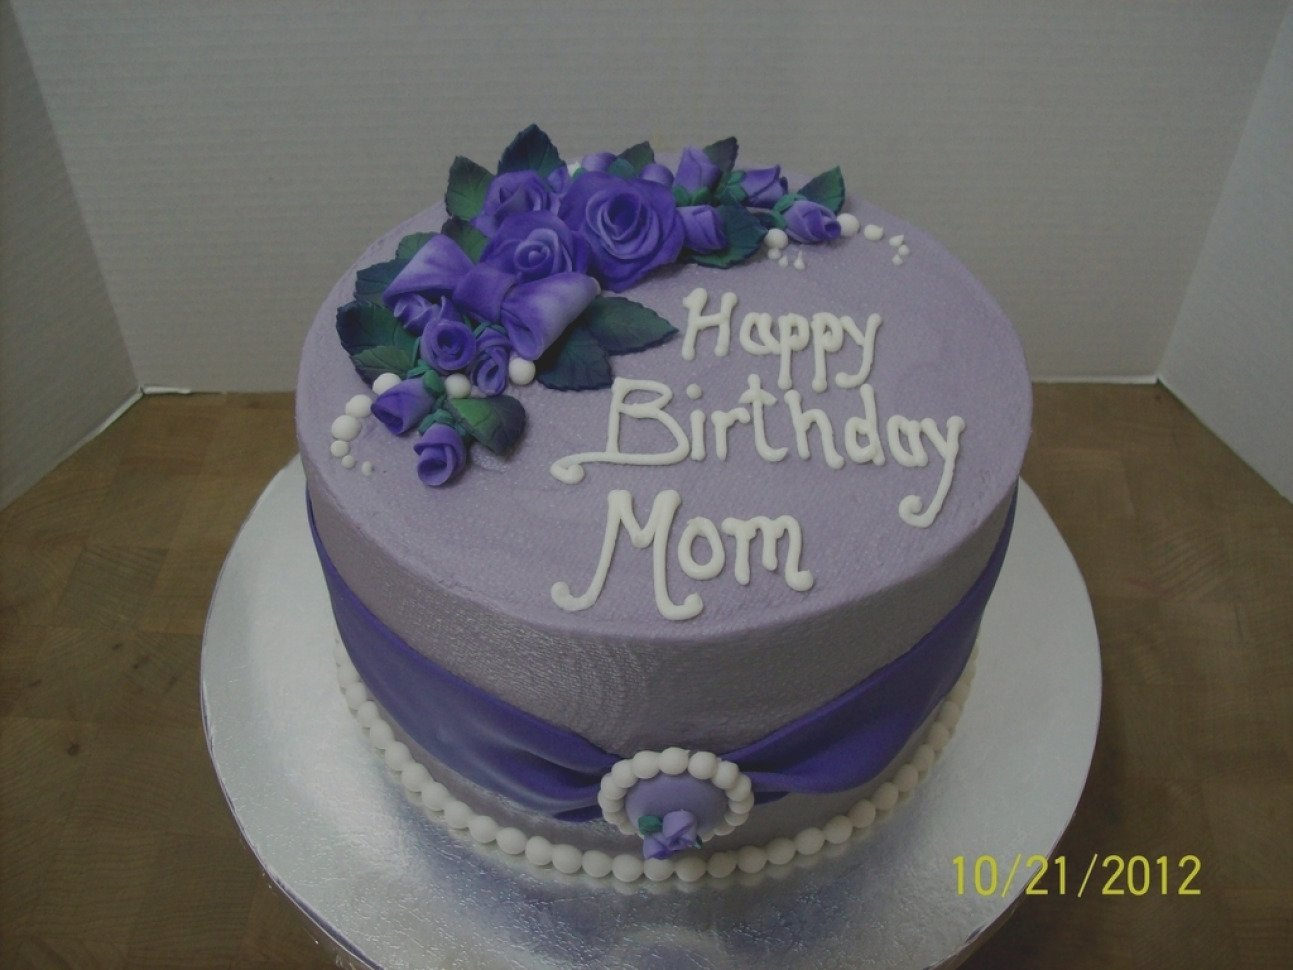 10 Fashionable Birthday Cake Ideas For Mom elegant birthday cake ideas for mom designs fondant throughout the